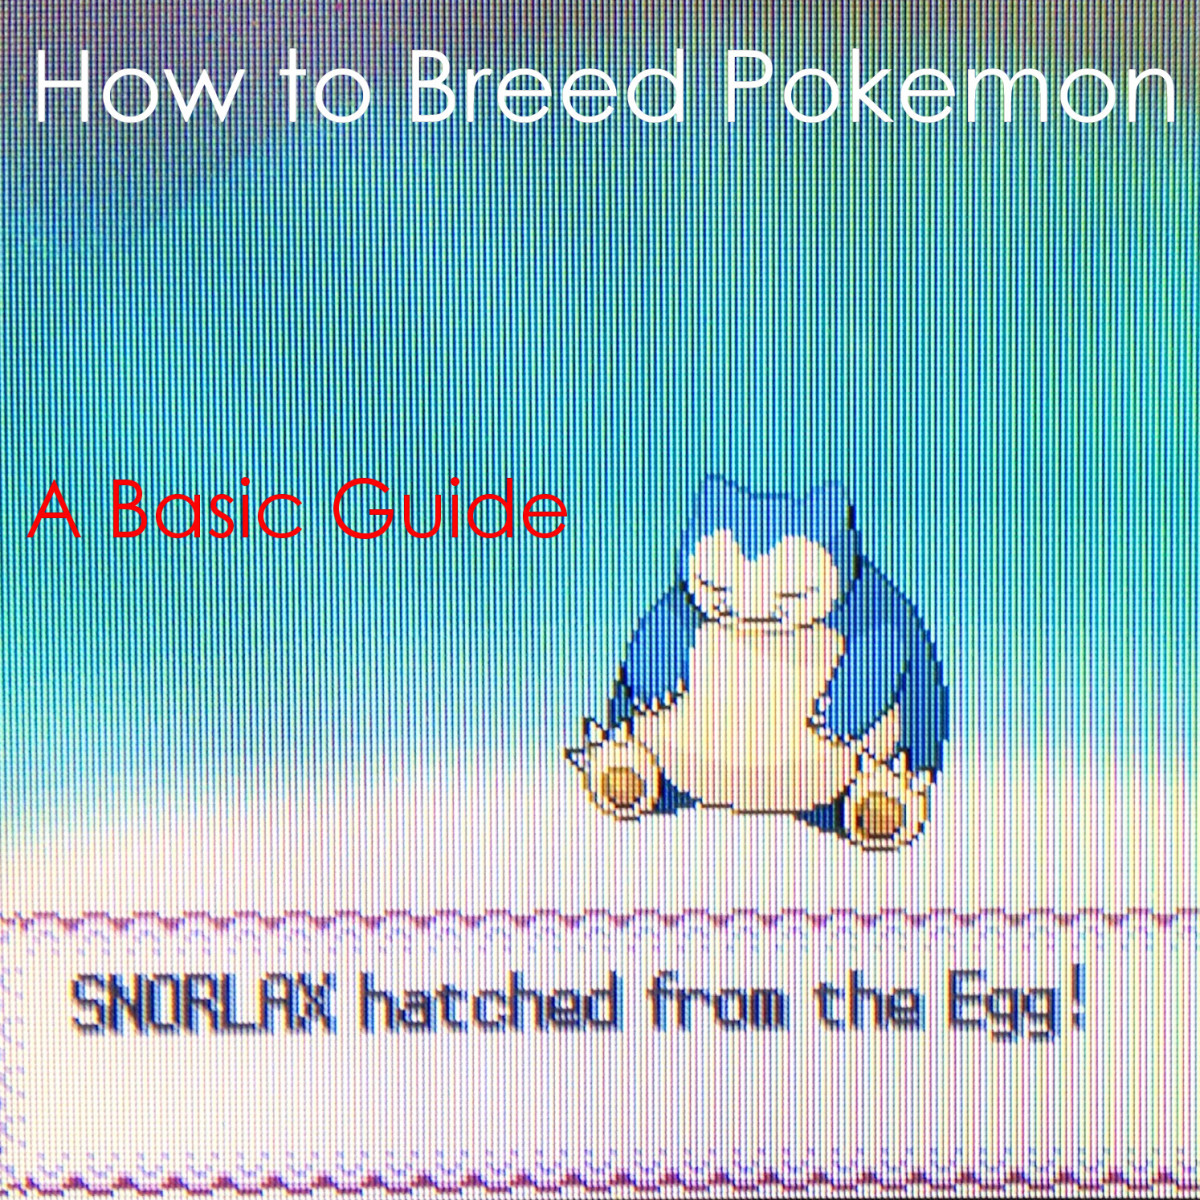 How to Breed Pokémon in the Pokémon Games